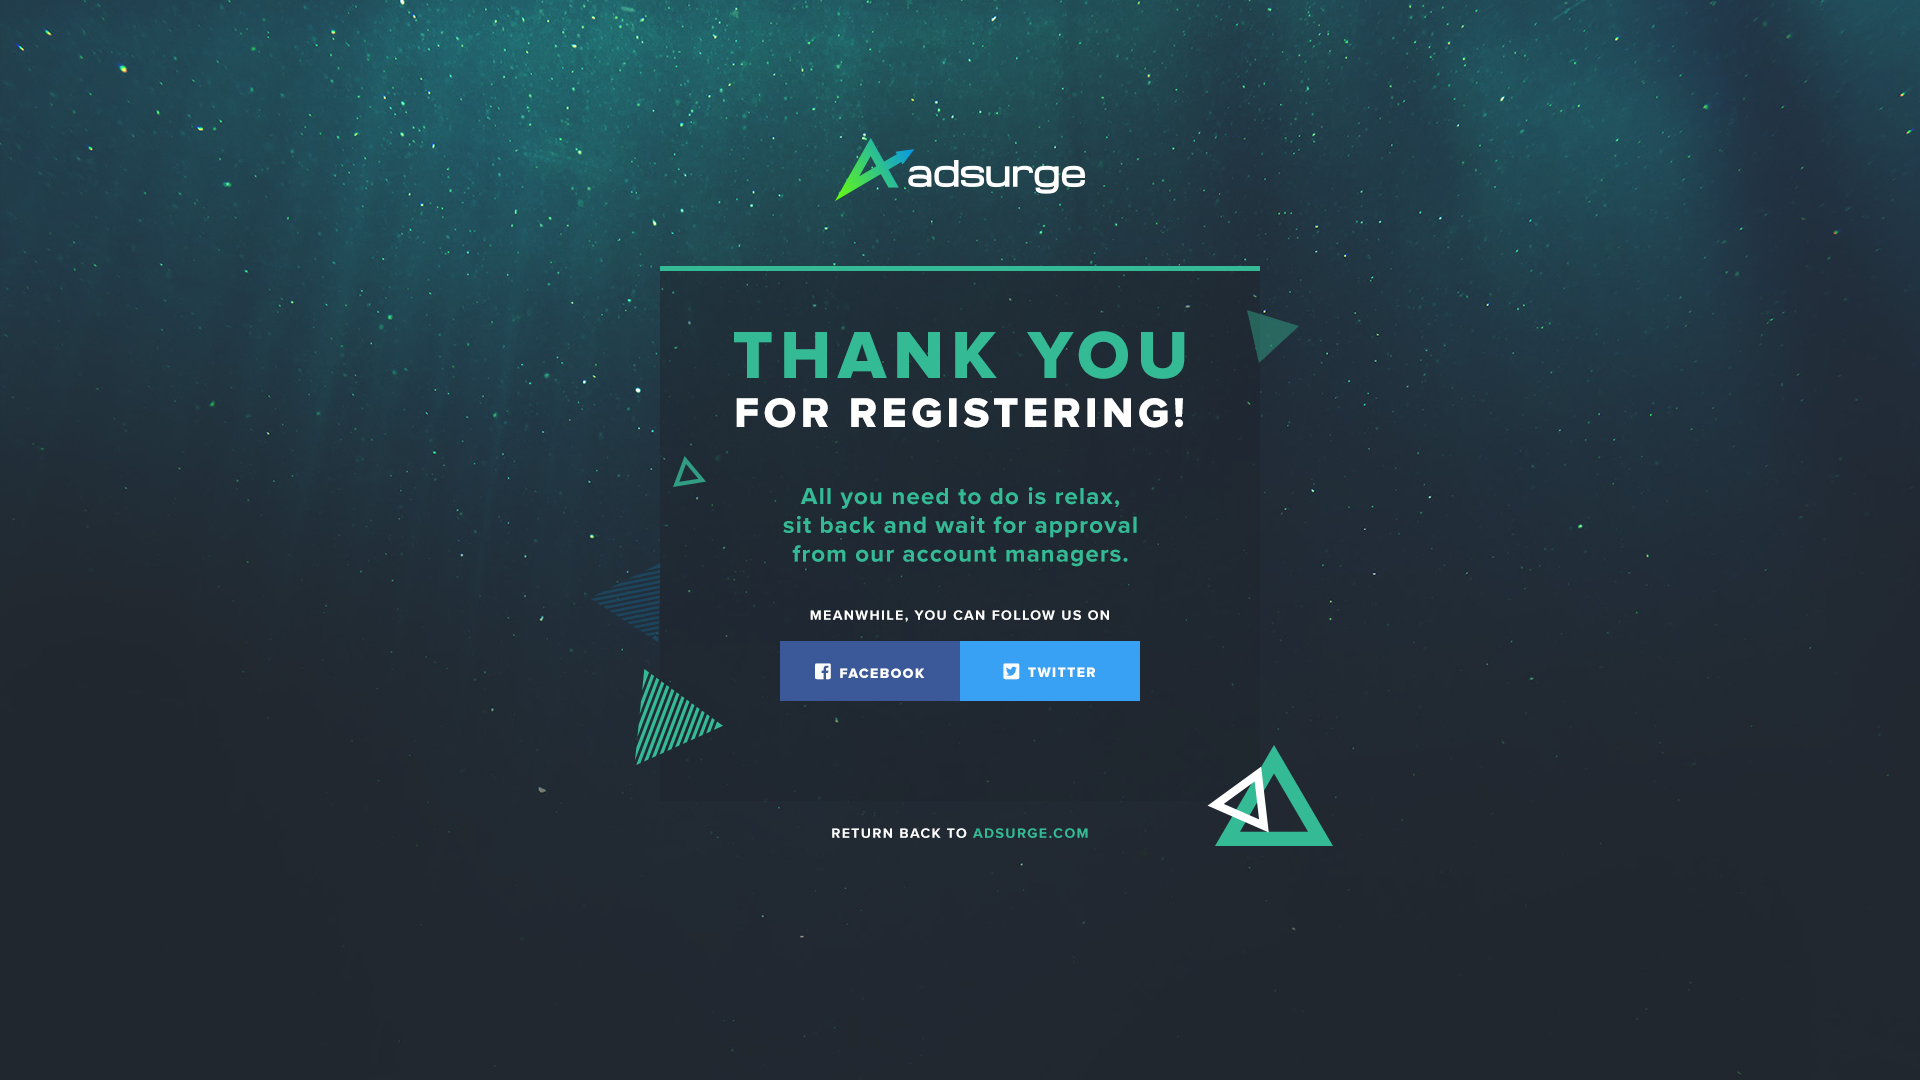 Adsurge Signup - Thank You - Social Media